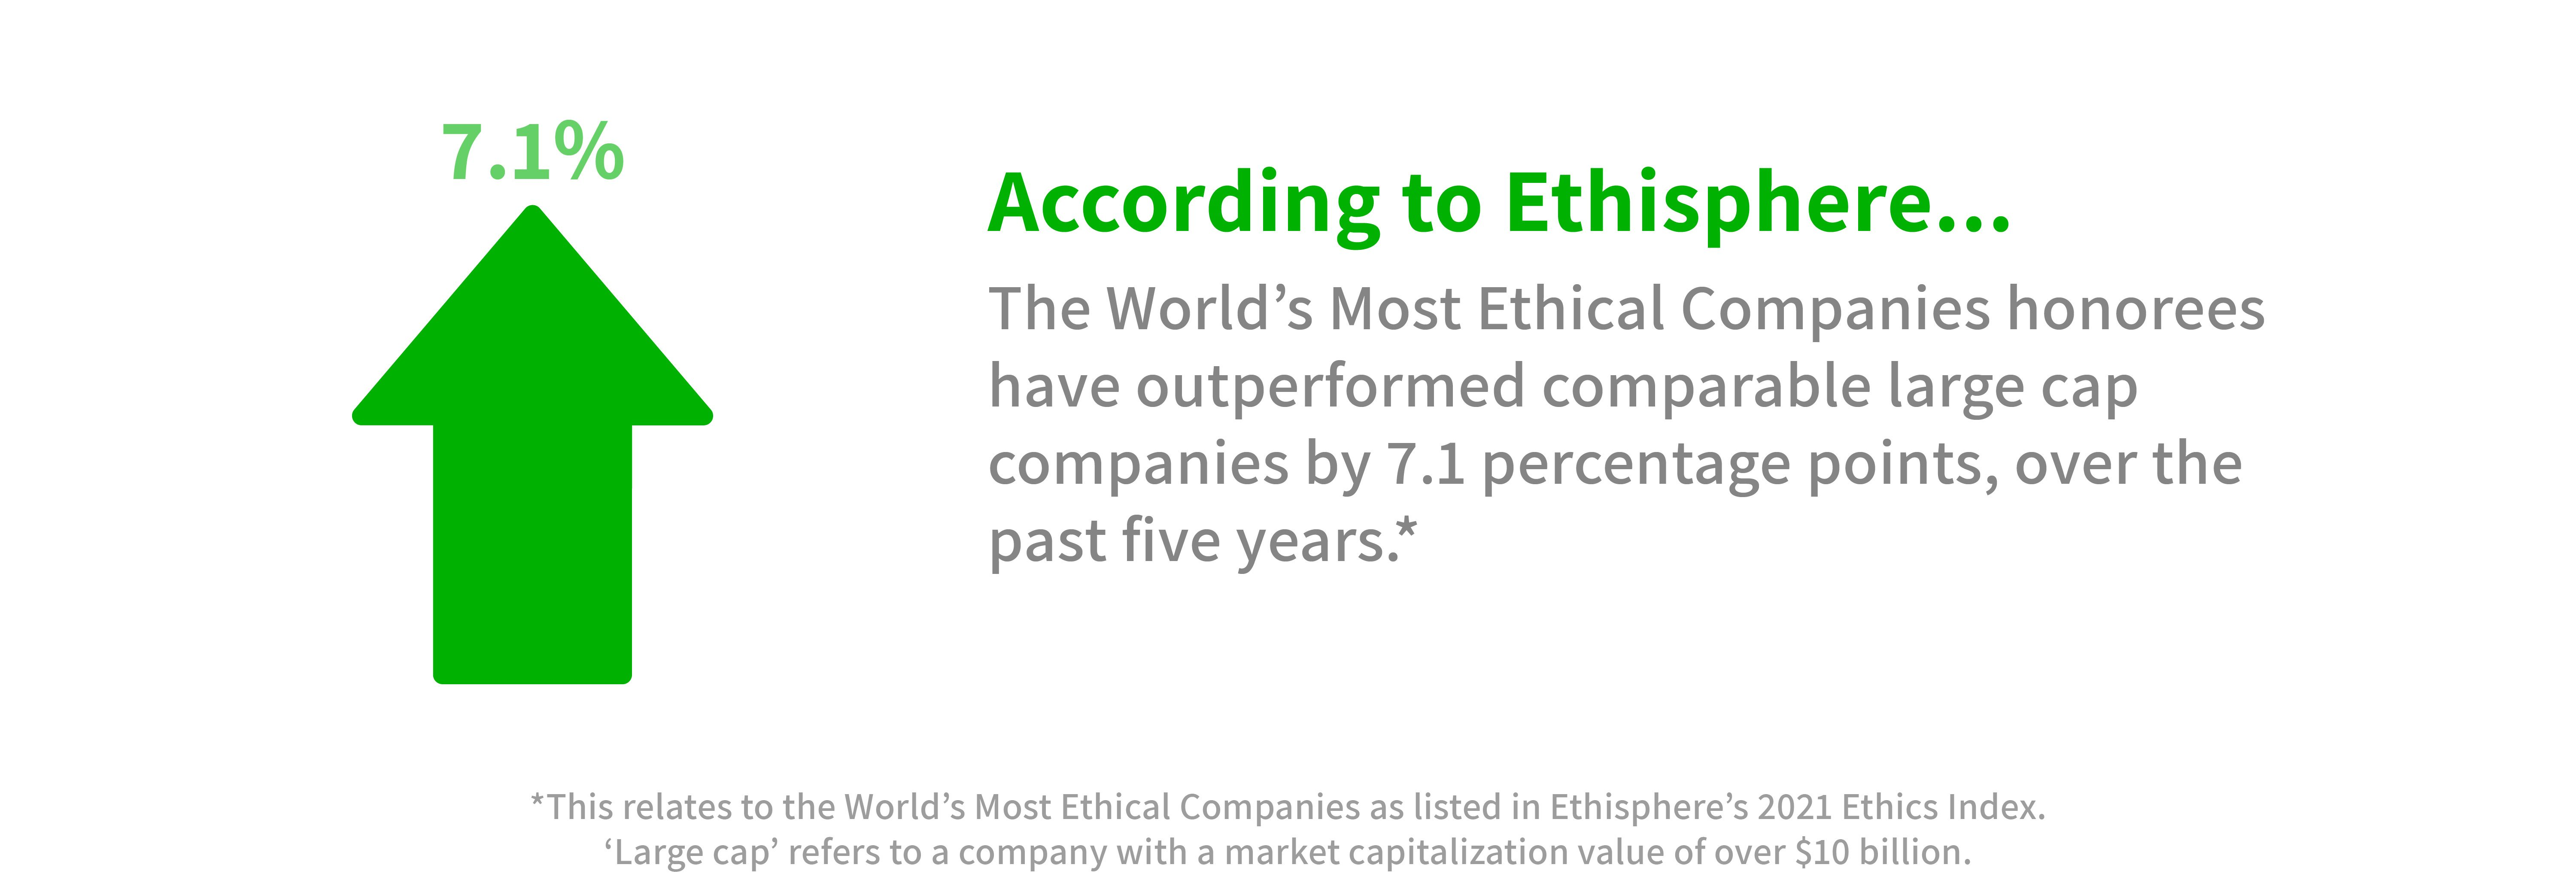 Graphic showing that the 'World's Most Ethical Companies' (as recognised by Ethisphere's 2021 Ethics Index) have outperformed comparable companies for the past five years.